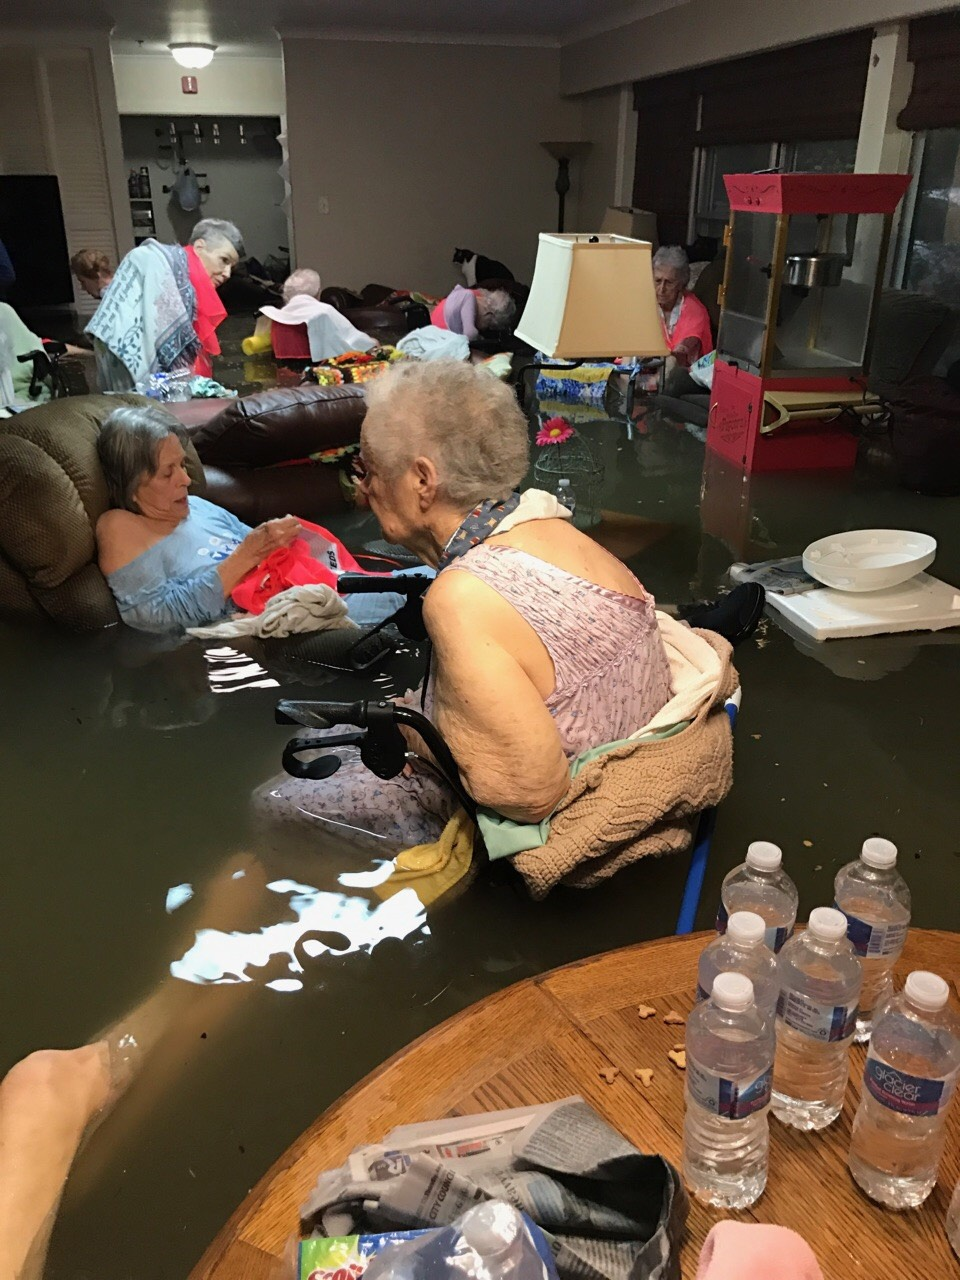 Going viral can actually help. Take for example this photo of an elderly woman legs vanished in the waist high as the flood waters overwhelmed a  La Vita Bella Nursing Home in Dickinson Texas due to Hurricane Harvey in August. The owners of the living center posted it to Twitter asking for help. Rescue teams answered with air lifts. It was one of the many ways people harnessed the power of social media after disaster hit this year.